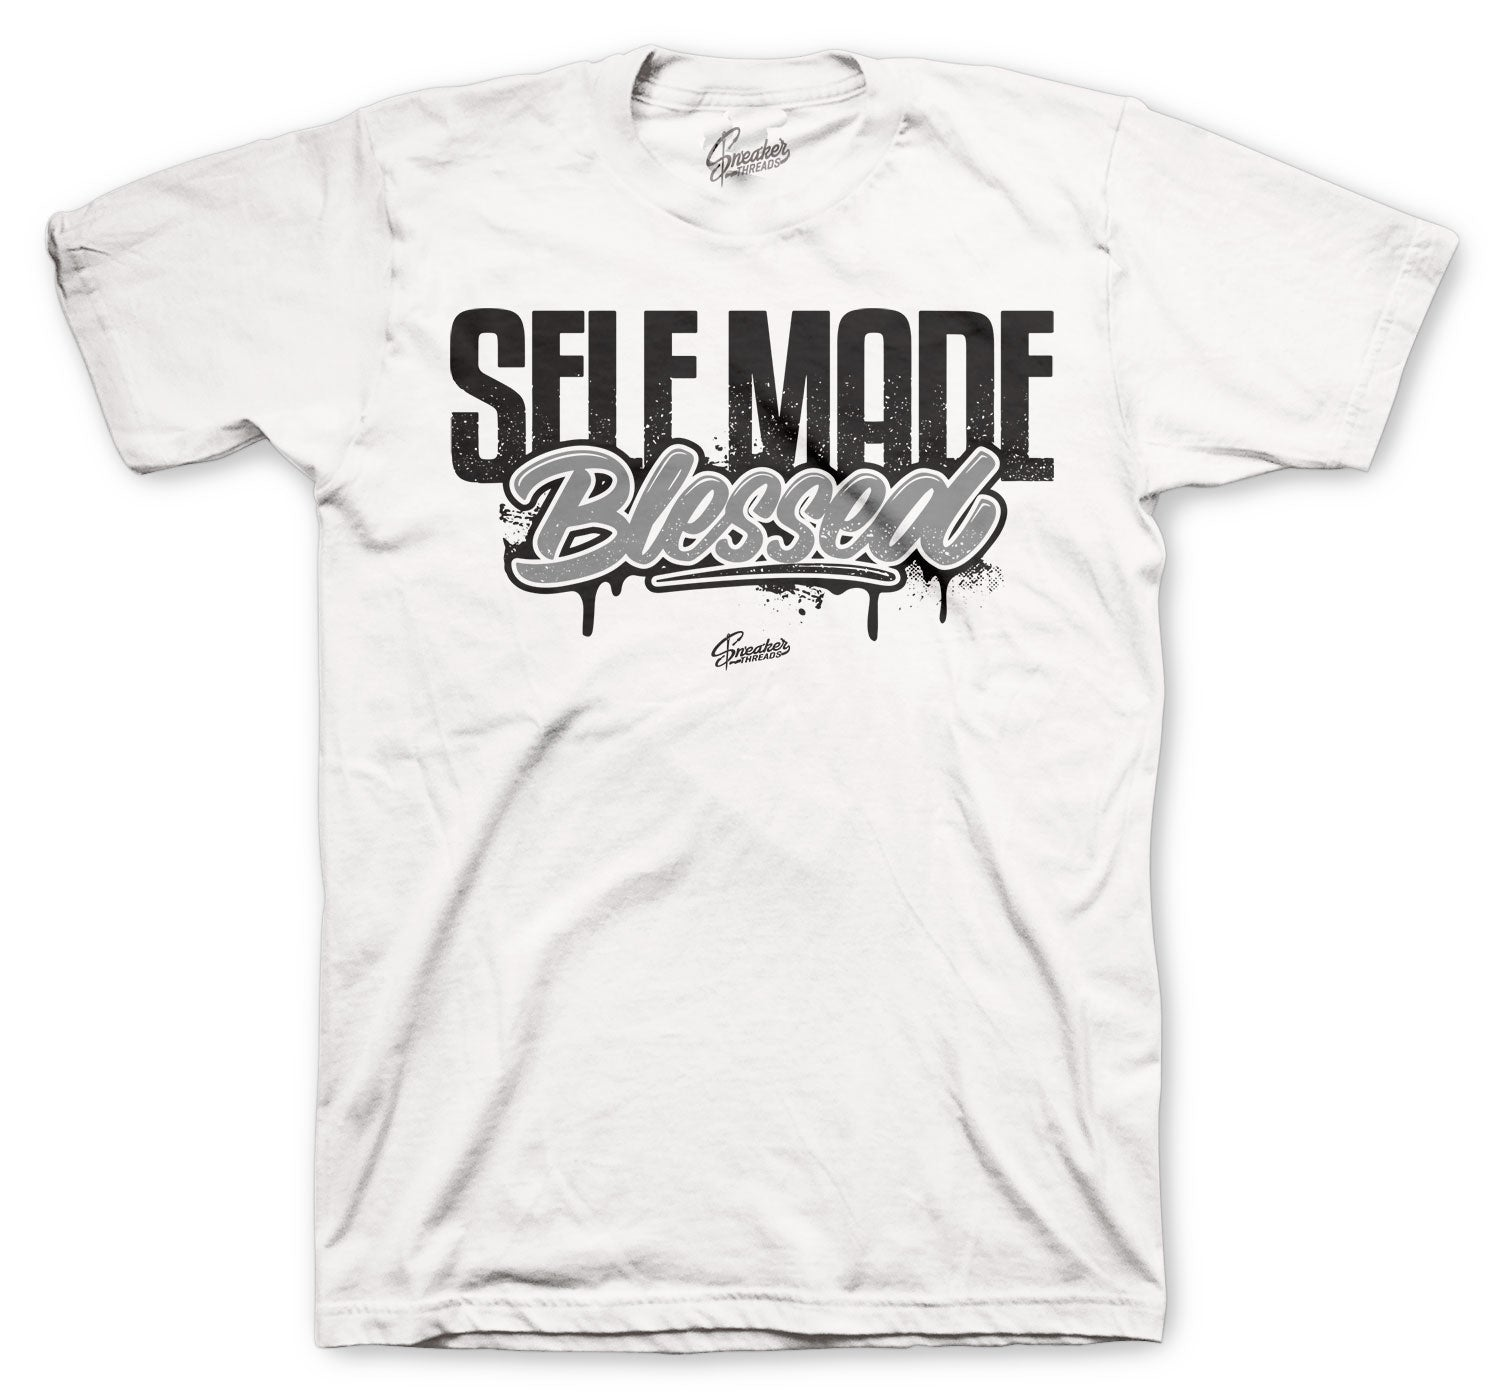 Jordan 4 Black Cat Self made Shirt